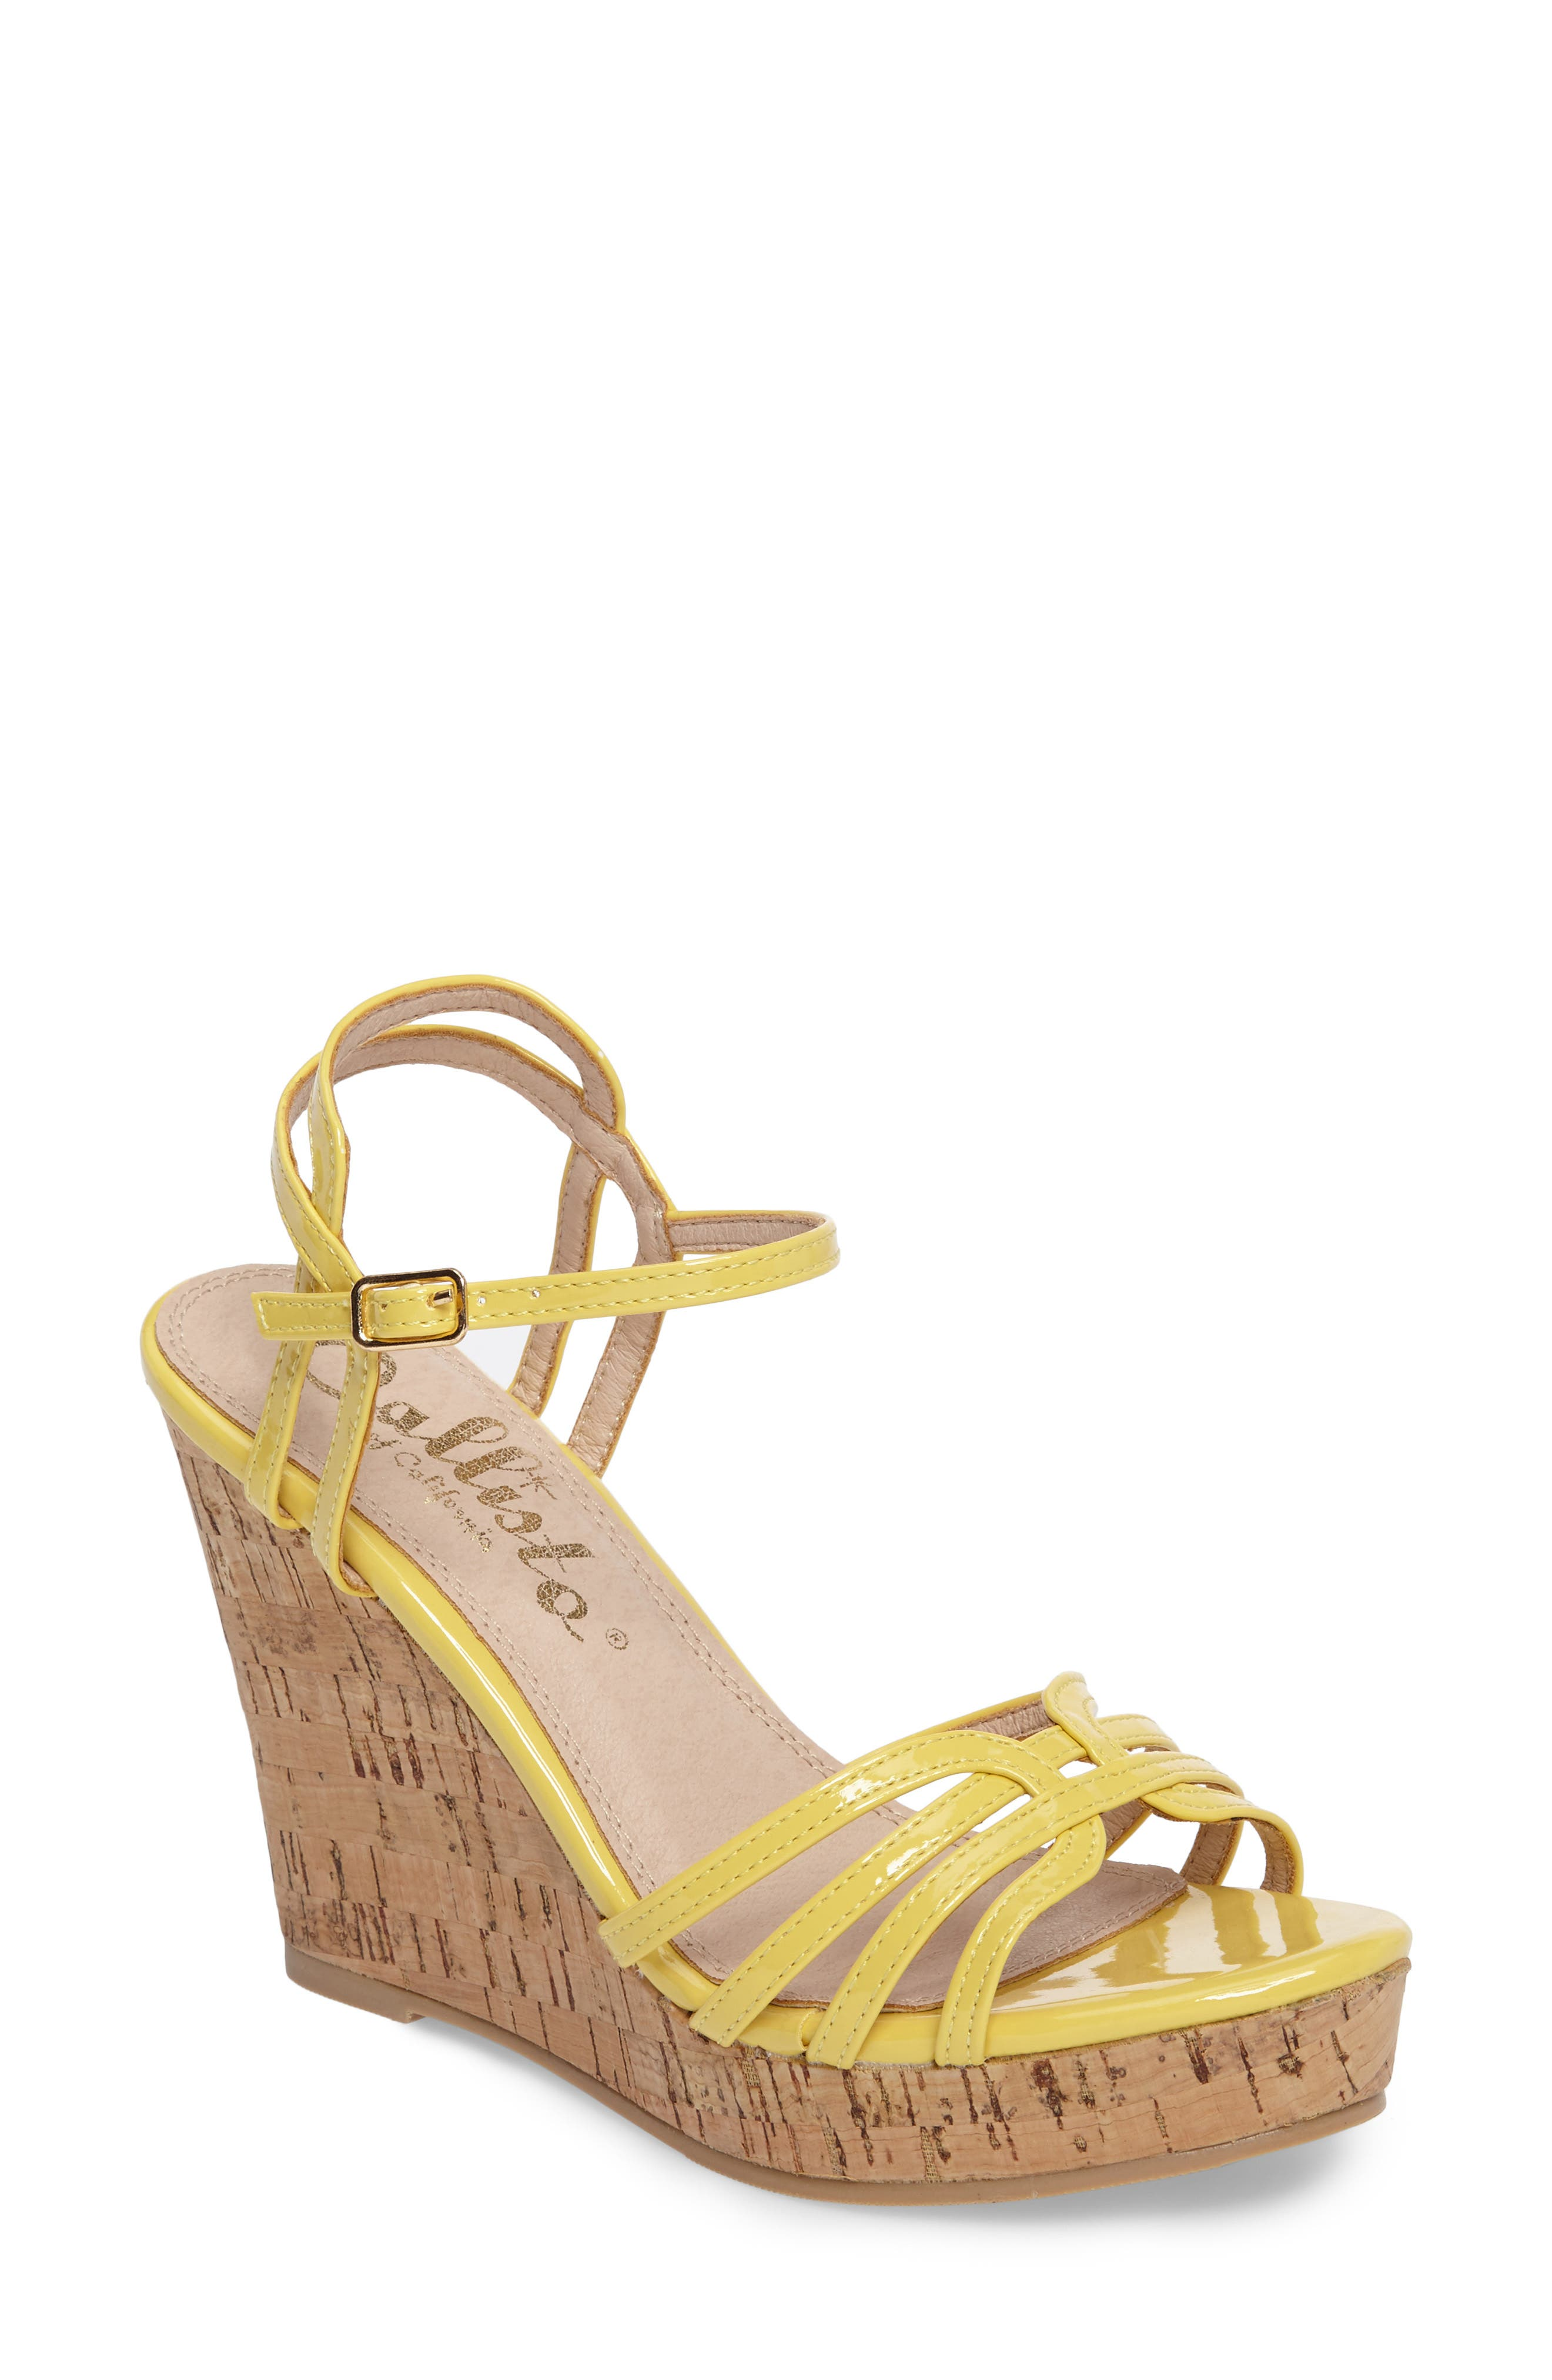 Oasis Platform Wedge Sandal,                         Main,                         color, Yellow Synthetic